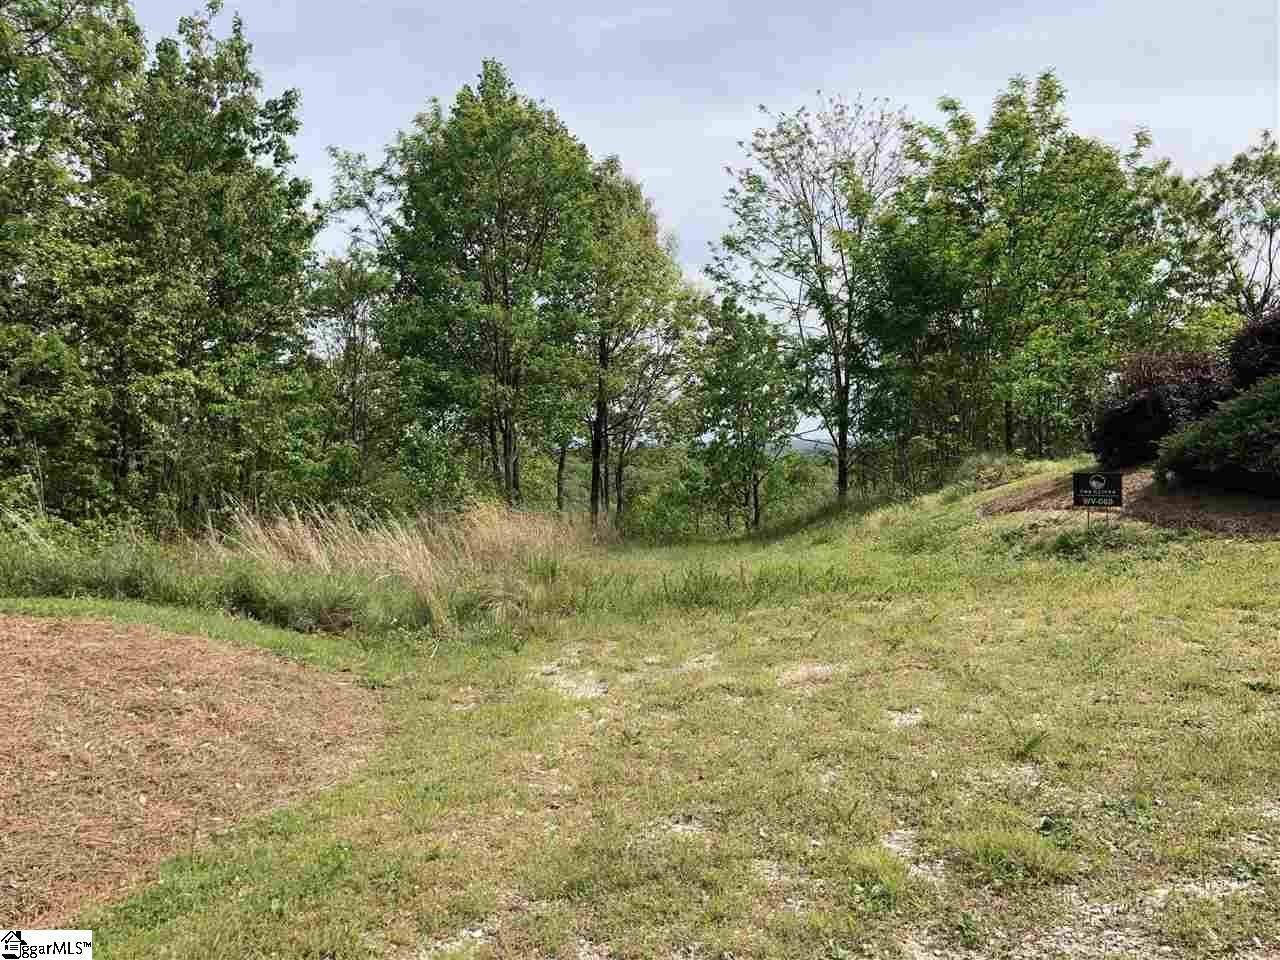 16. Residential Lot for Sale at The Cliffs At Mountain Park, Marietta, SC 29661